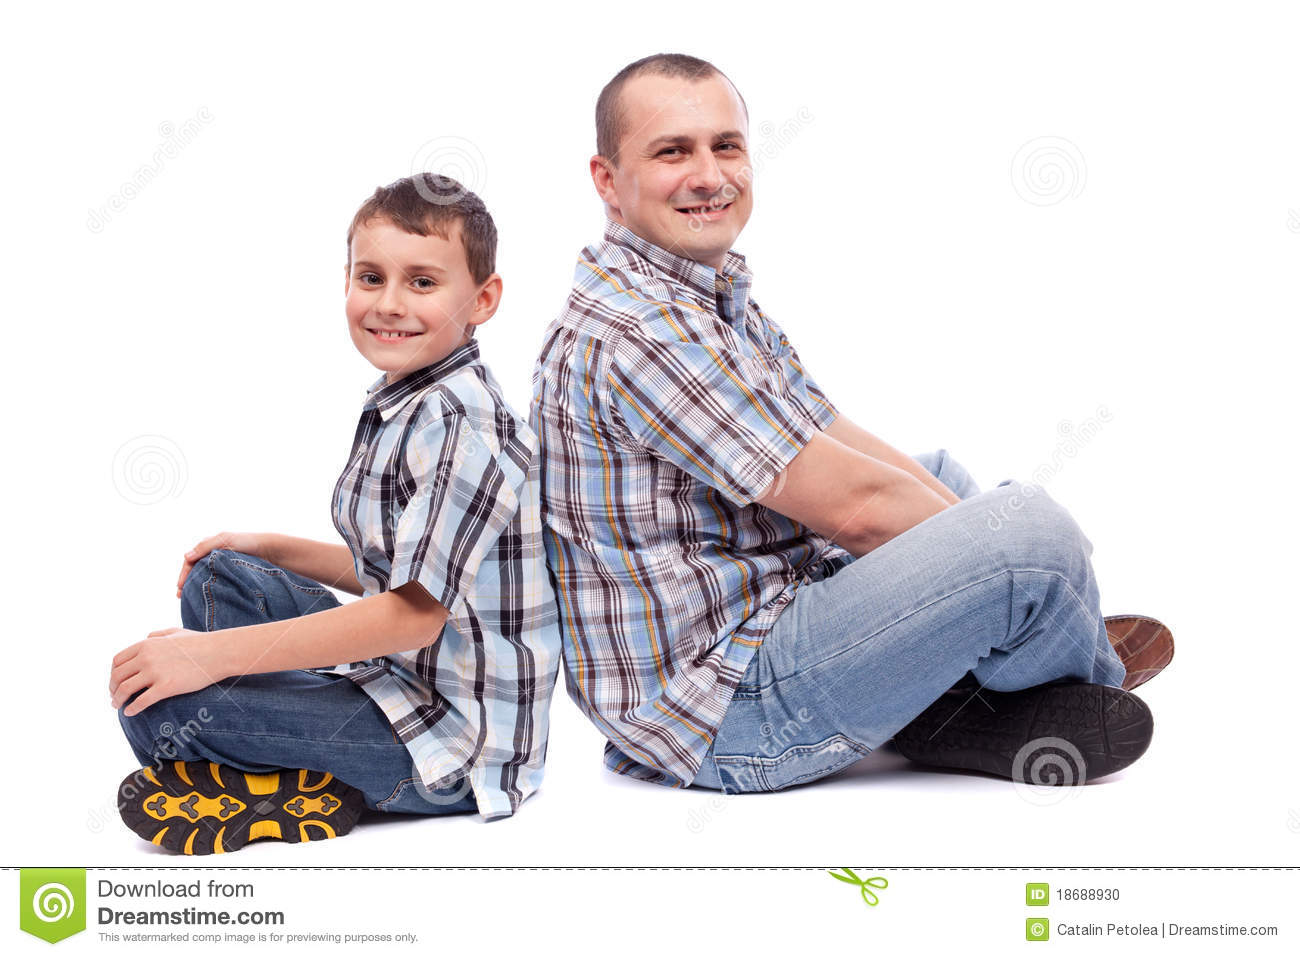 Father and son sitting back to back